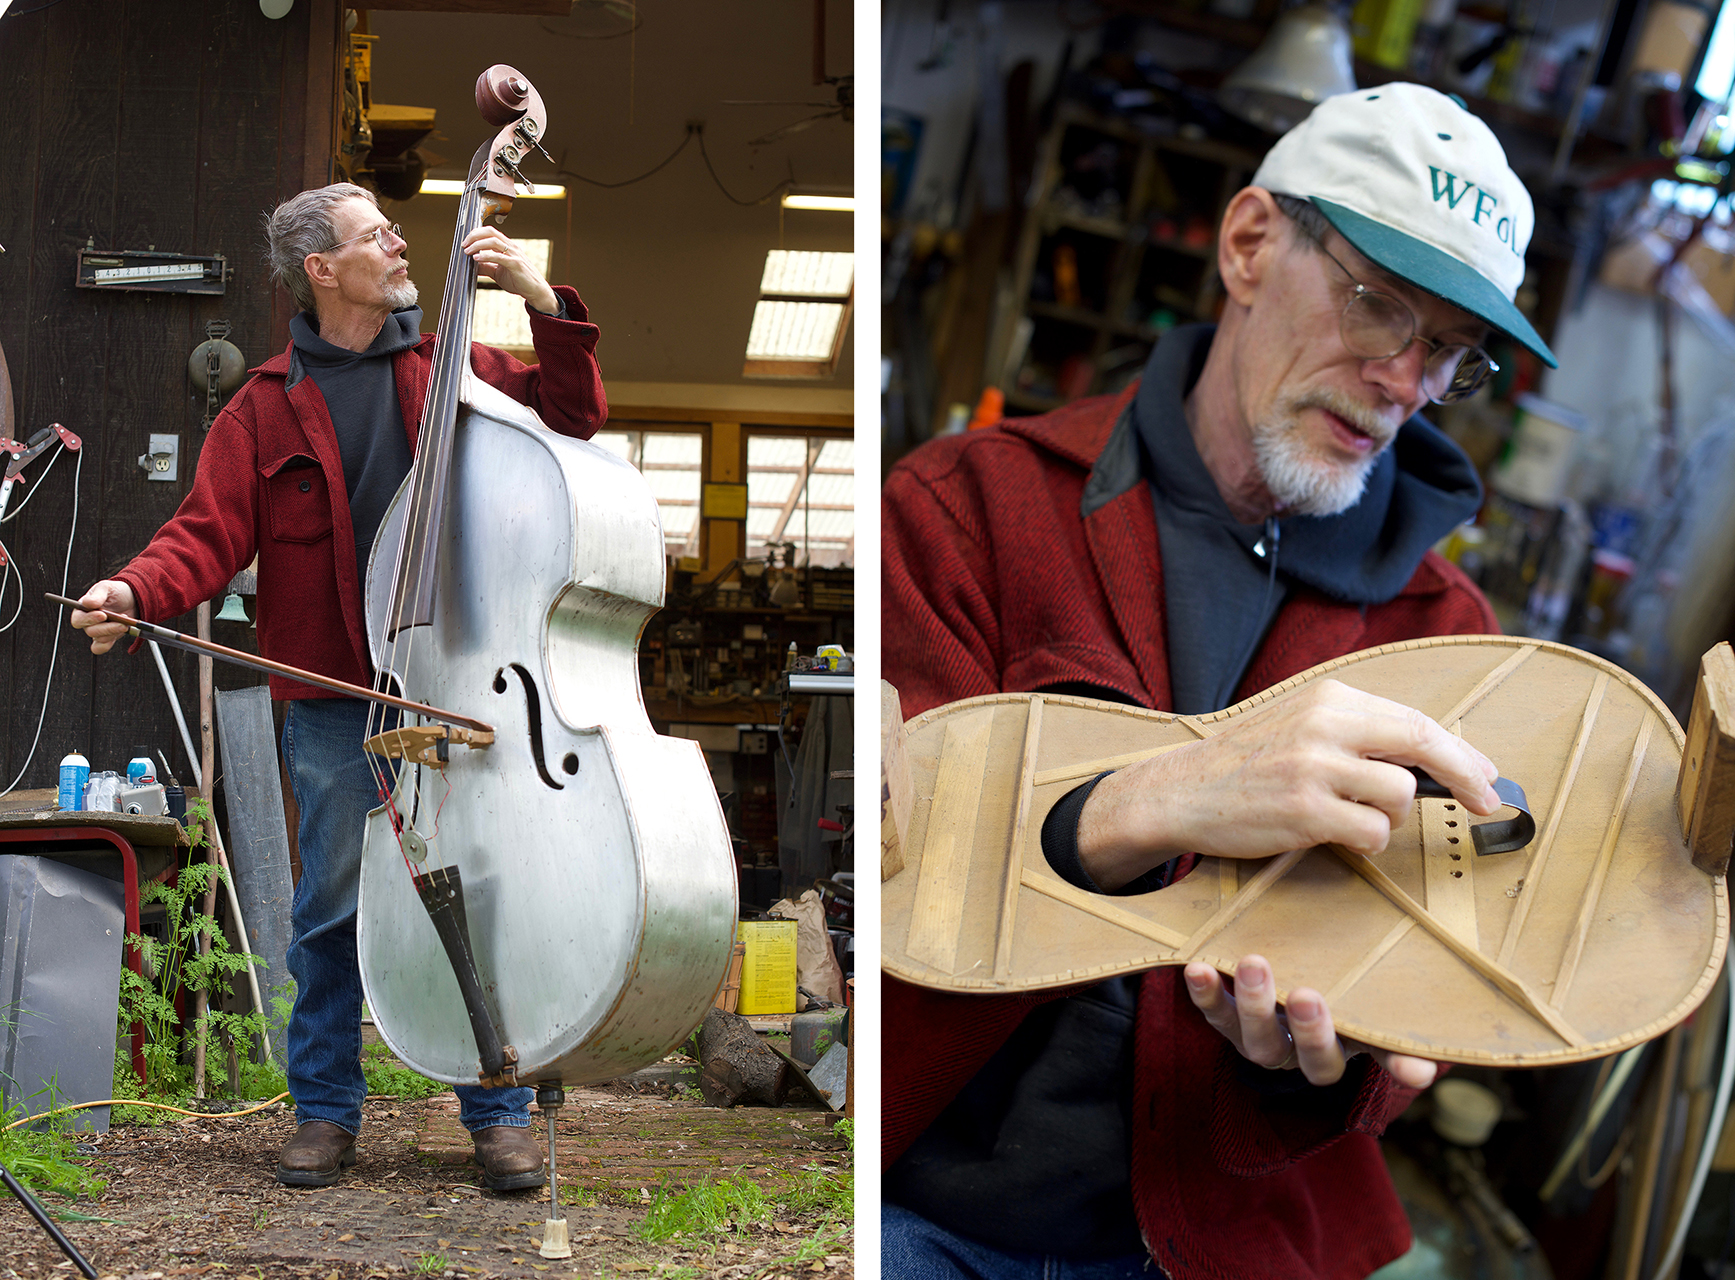 Cary is an accomplished bass player and multi-instrumentalist. He uses the top of a 1920s Martin guitar to demonstrate a special tool he made for removing bridge plates and bracing without detaching the top of an instrument from the body.